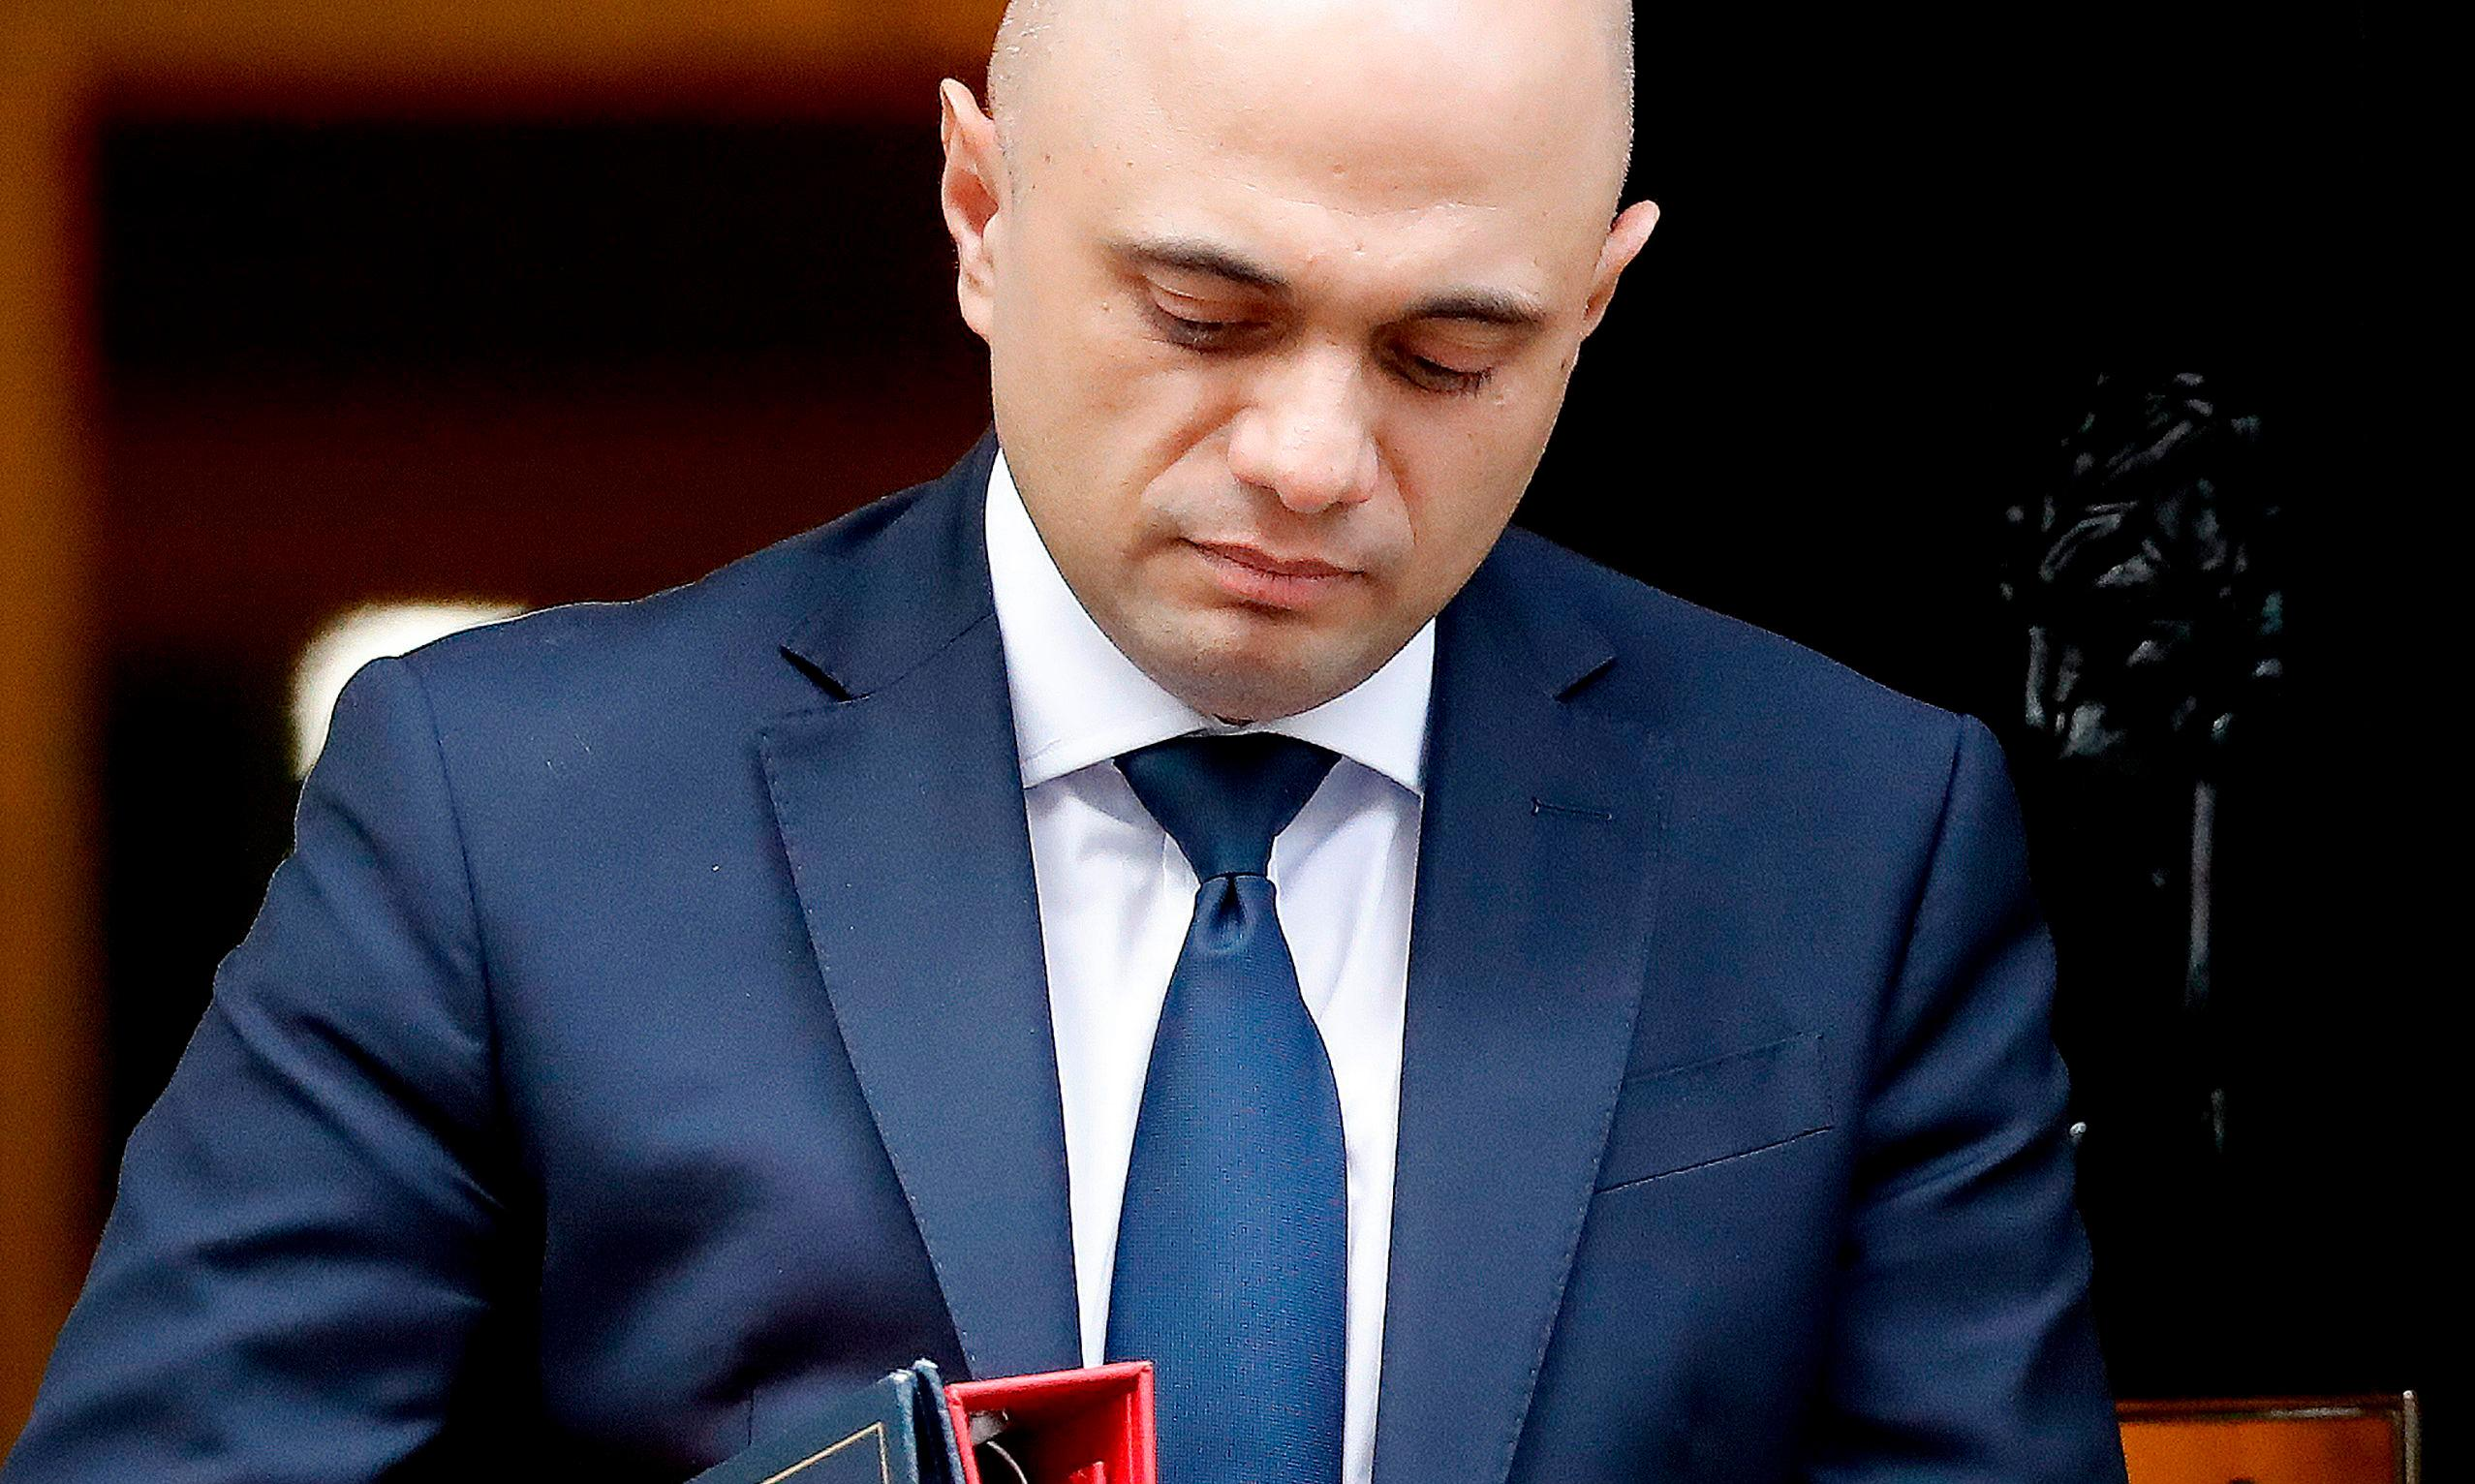 Javid's decision on Shamima Begum demeans his office